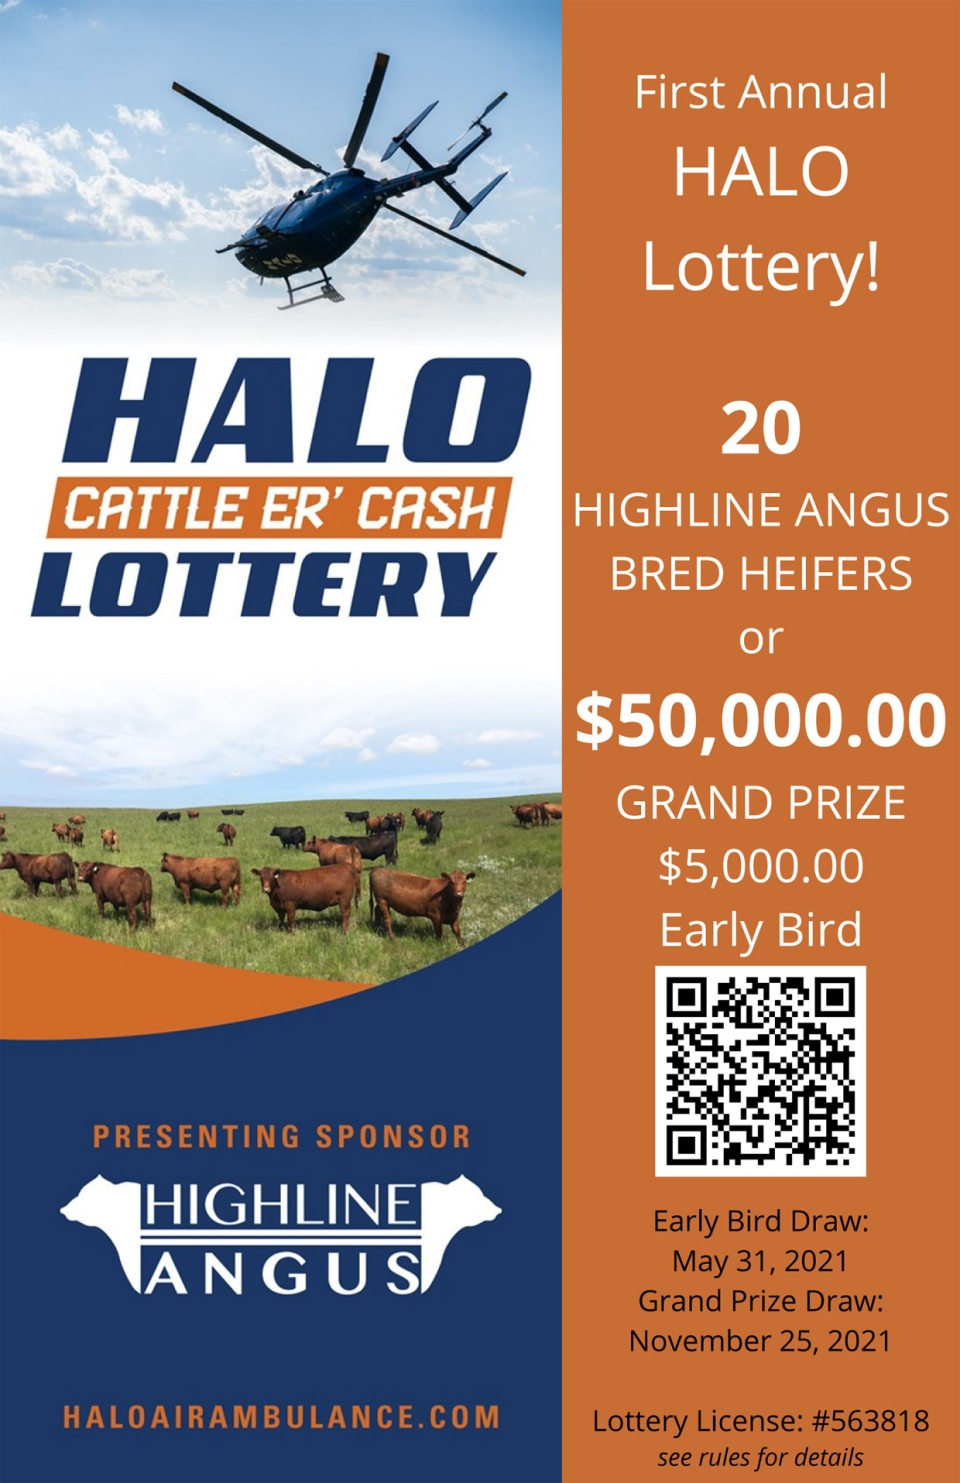 calgary, cattle, halo rescue, cows, heifers, rescu